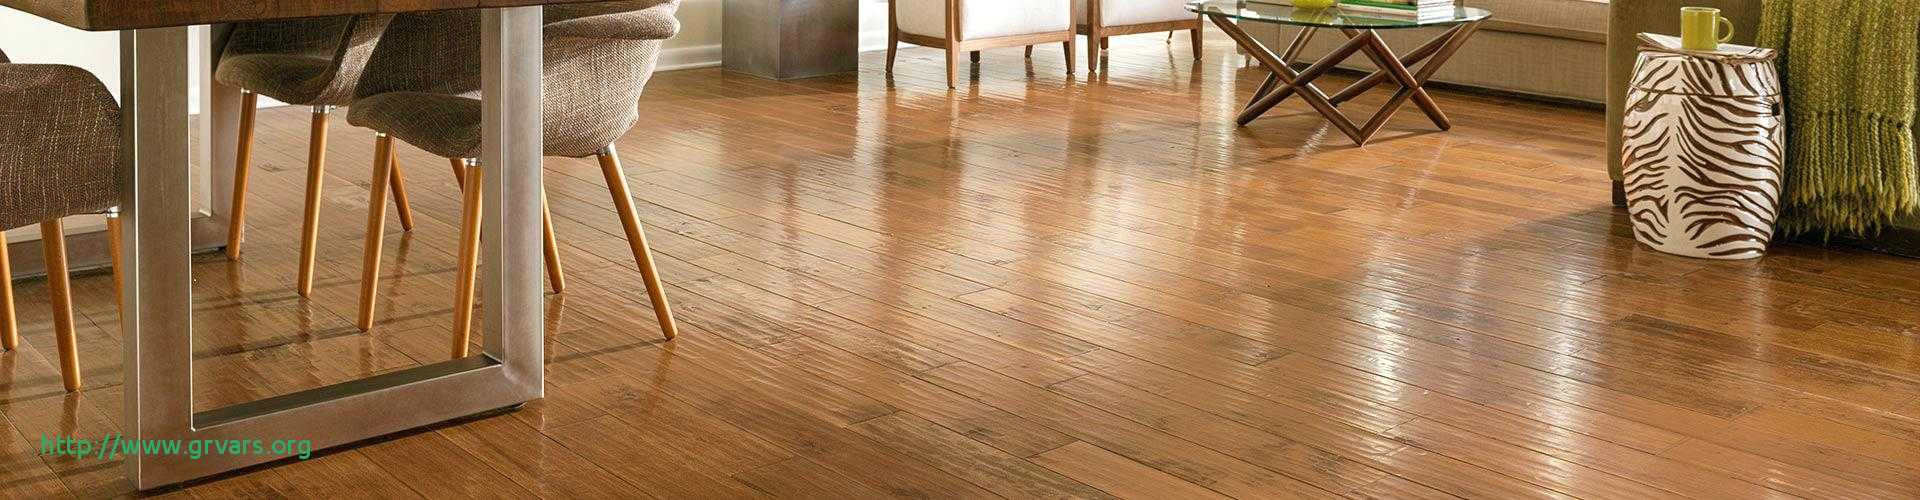 how to install fake hardwood floors of how much does lowes charge to install hardwood flooring inspirant od within how much does lowes charge to install hardwood flooring inspirant od grain tile bathroom wood shower no grout porcelain pros and cons